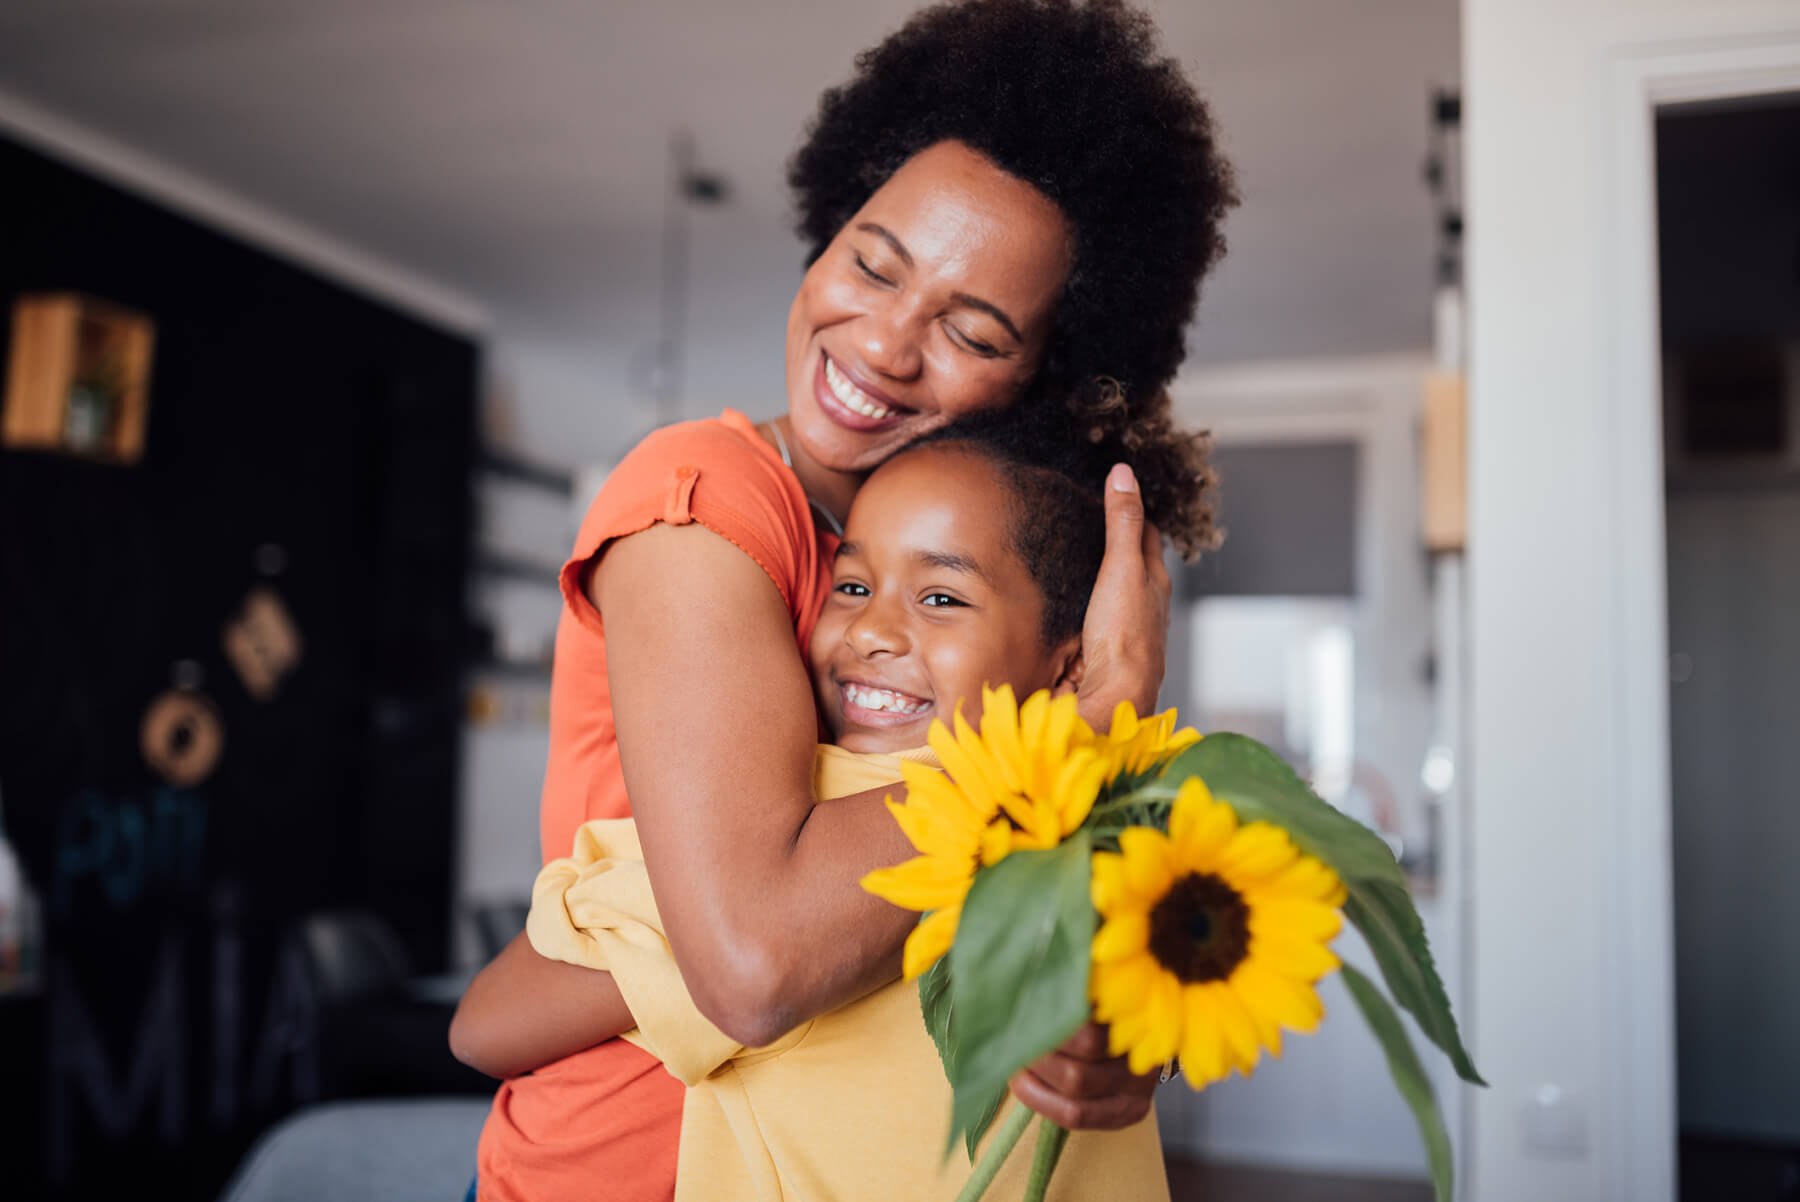 A mother and daughter embrace, holding sunflowers